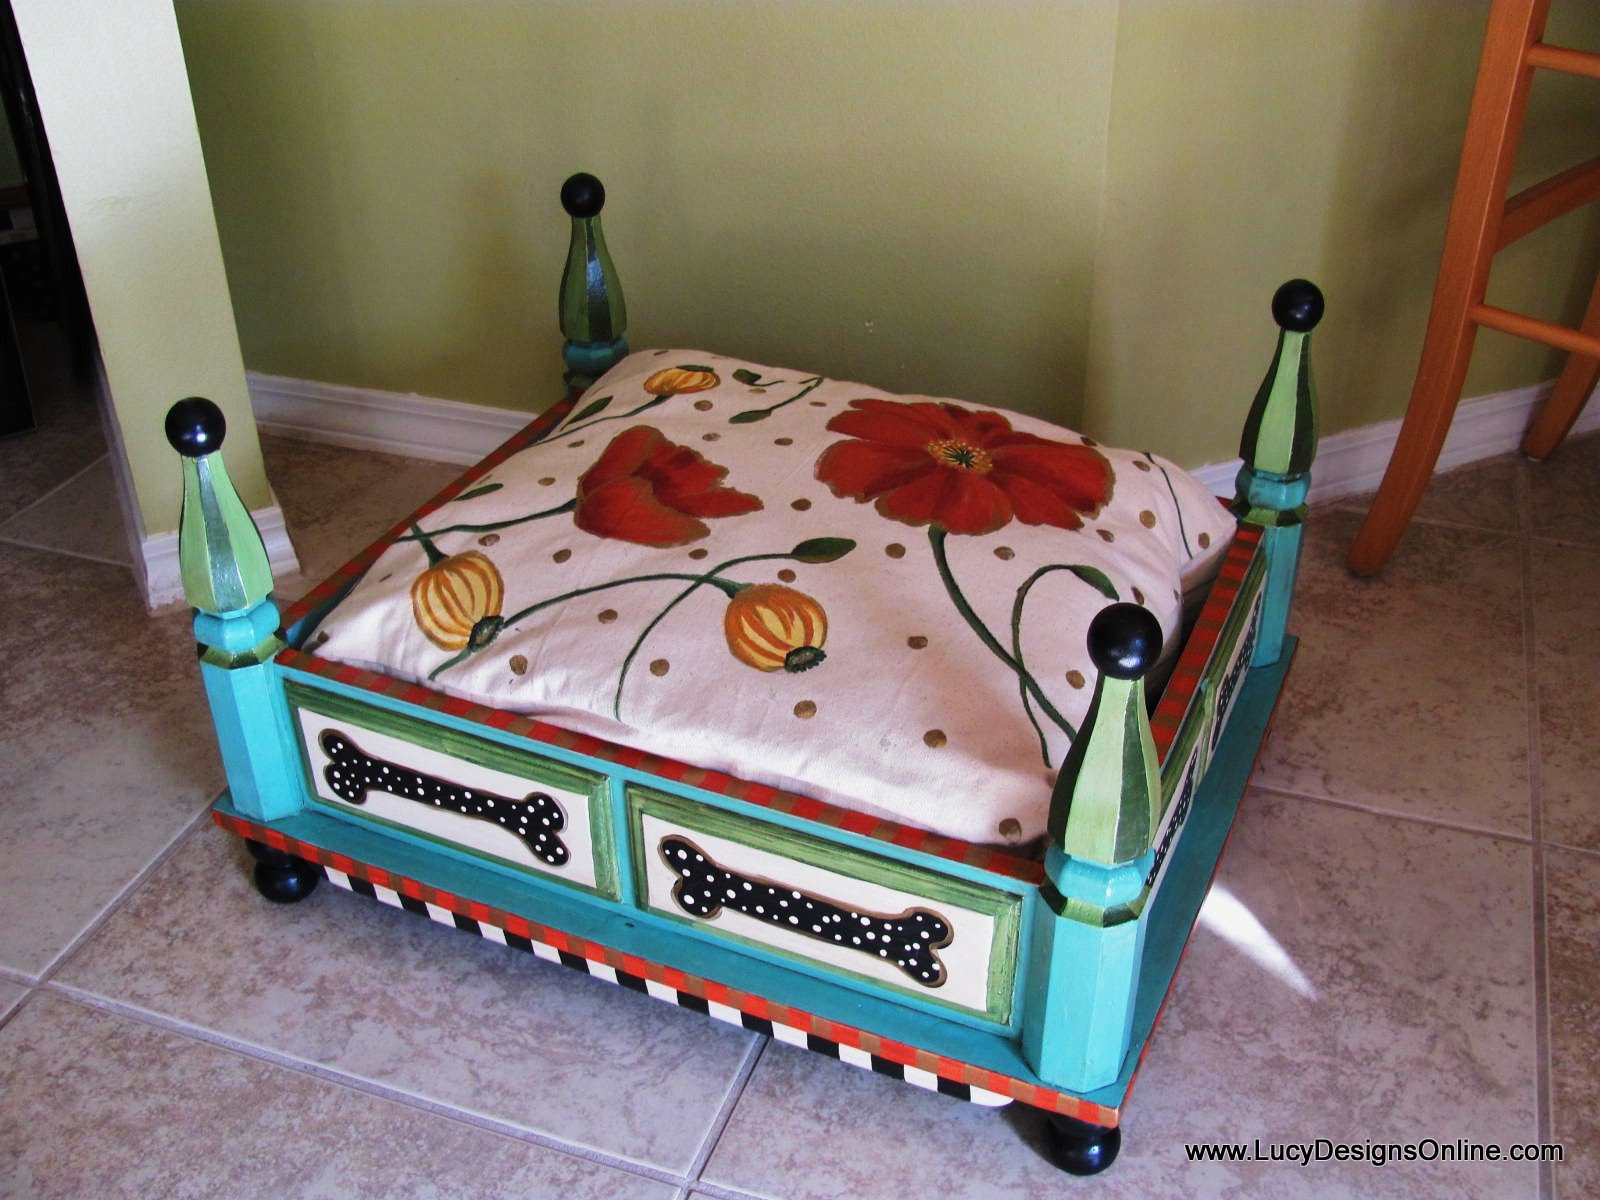 dog table korrectkritterscom hand painted turquoise from end with floral and pet ashley furniture lift top coffee grey side bedside night legends brentwood bookcase royal king